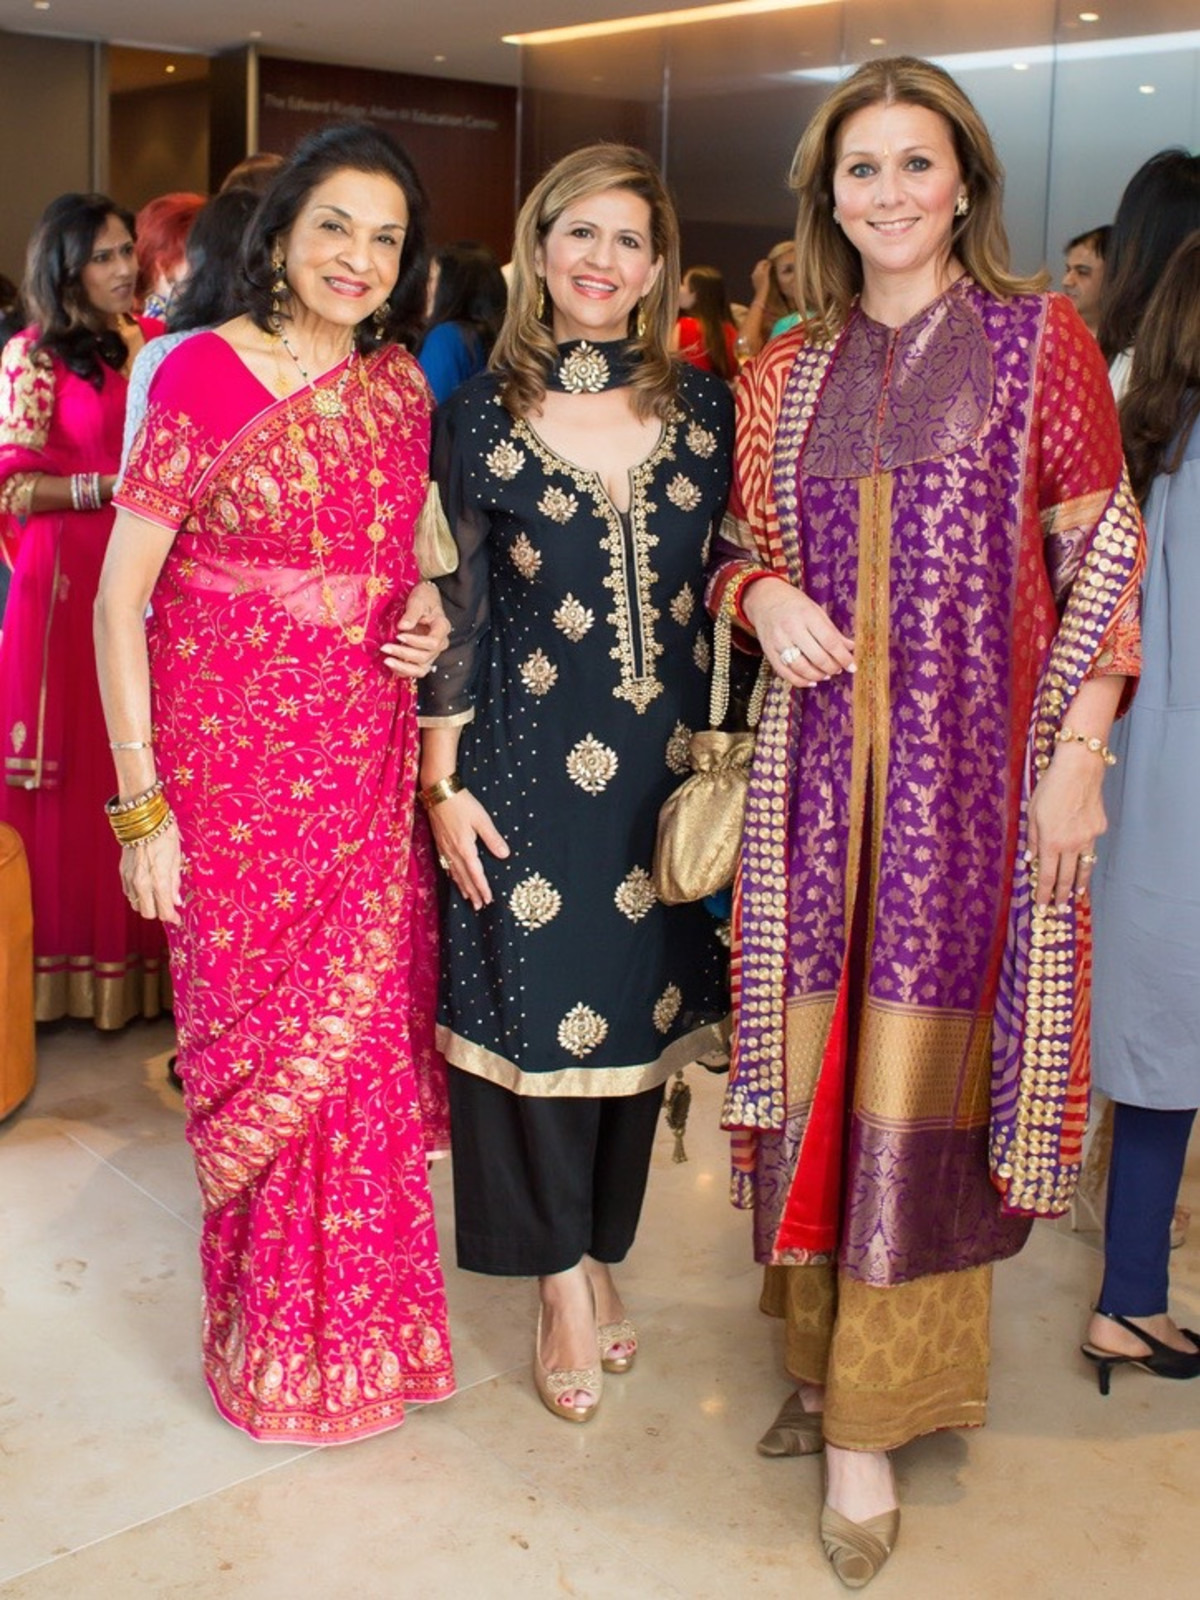 Monjula Chidambaram, Mehrnaz Gill, Donatella Benckenstein at International Mother's Day Soiree